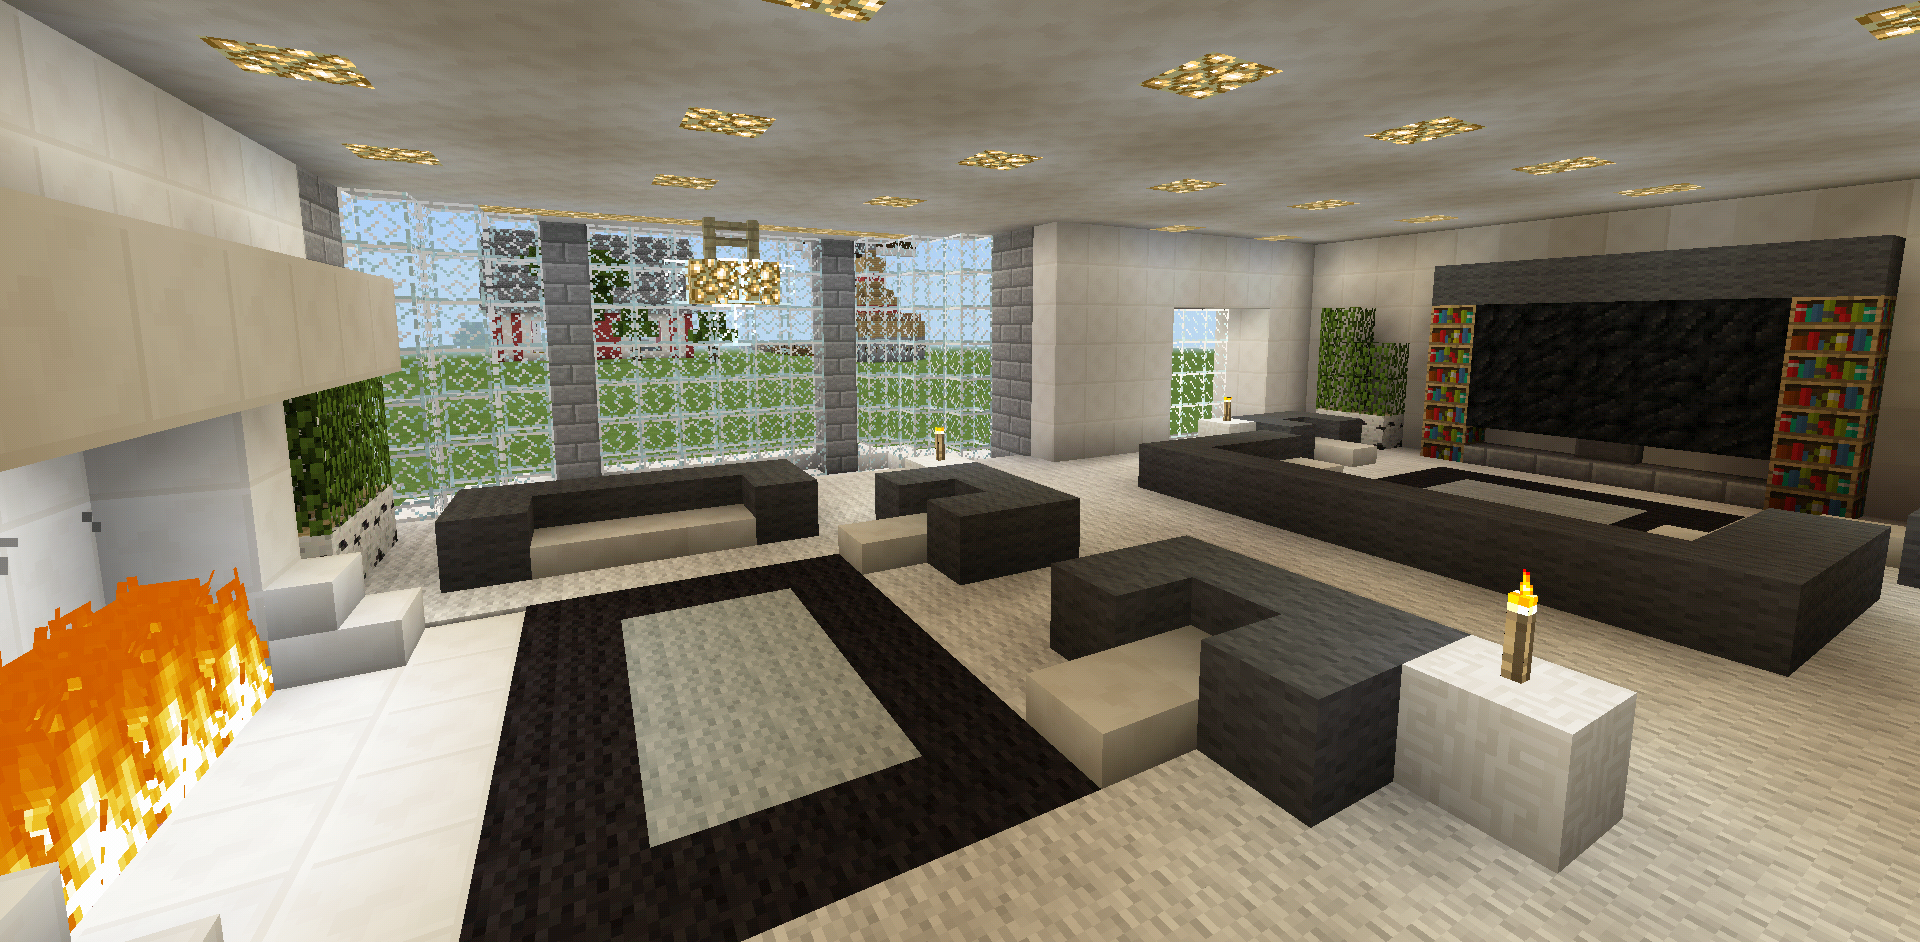 Living Room Minecraft minecraft family living room and fireplace couch chair tv